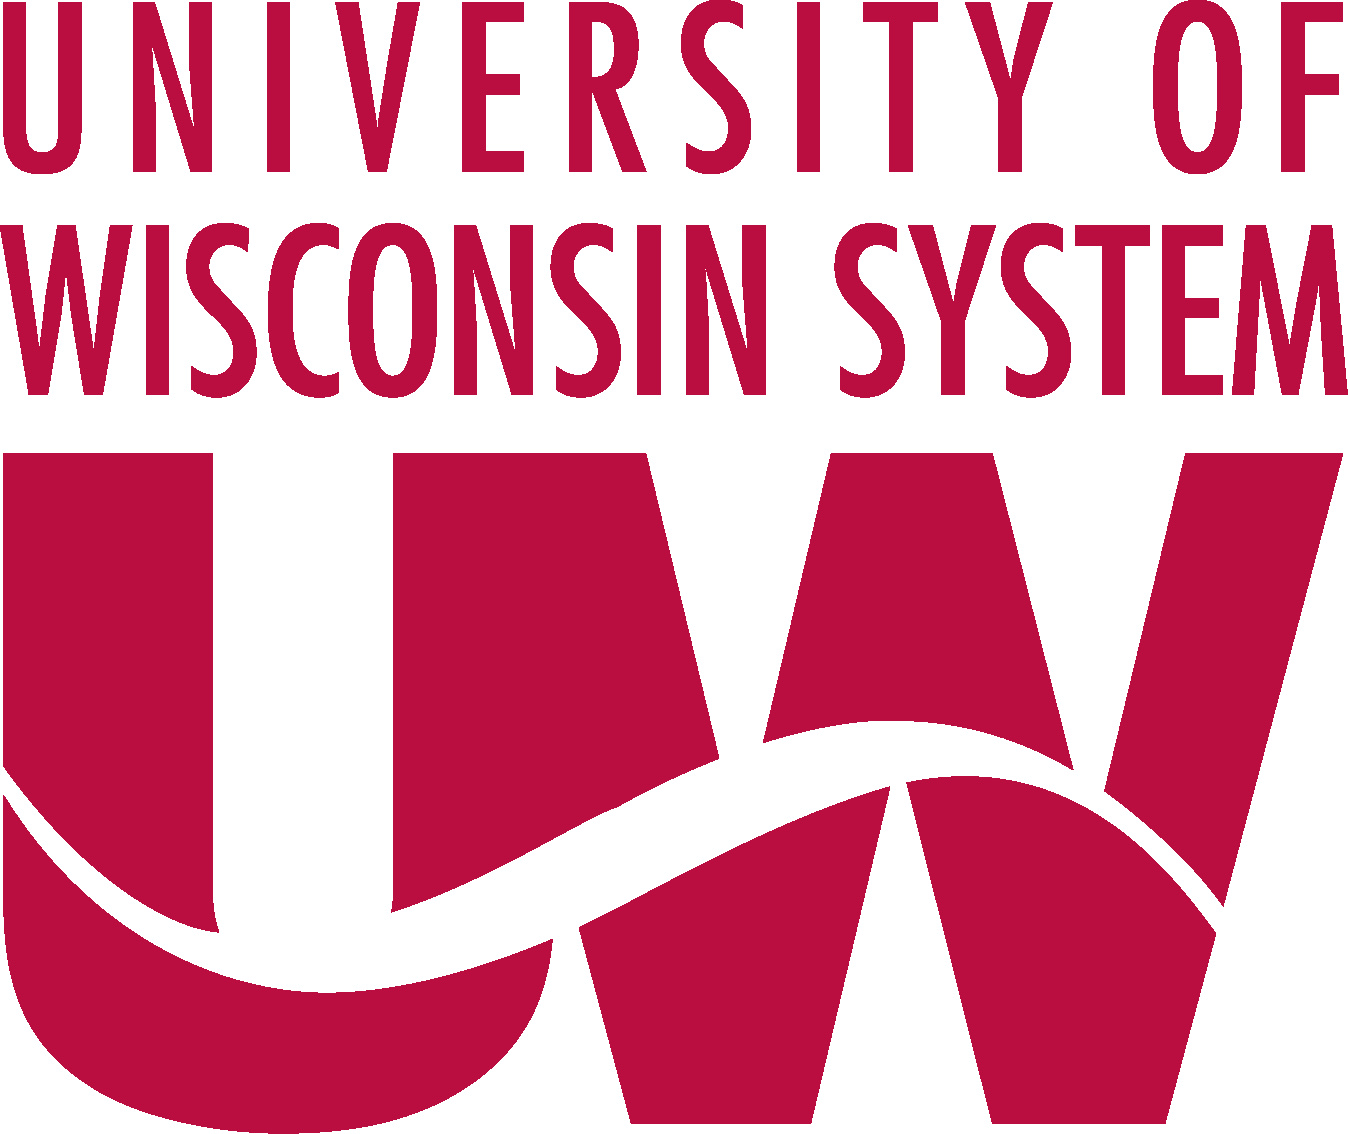 UW System adopts universal medical withdrawal policy